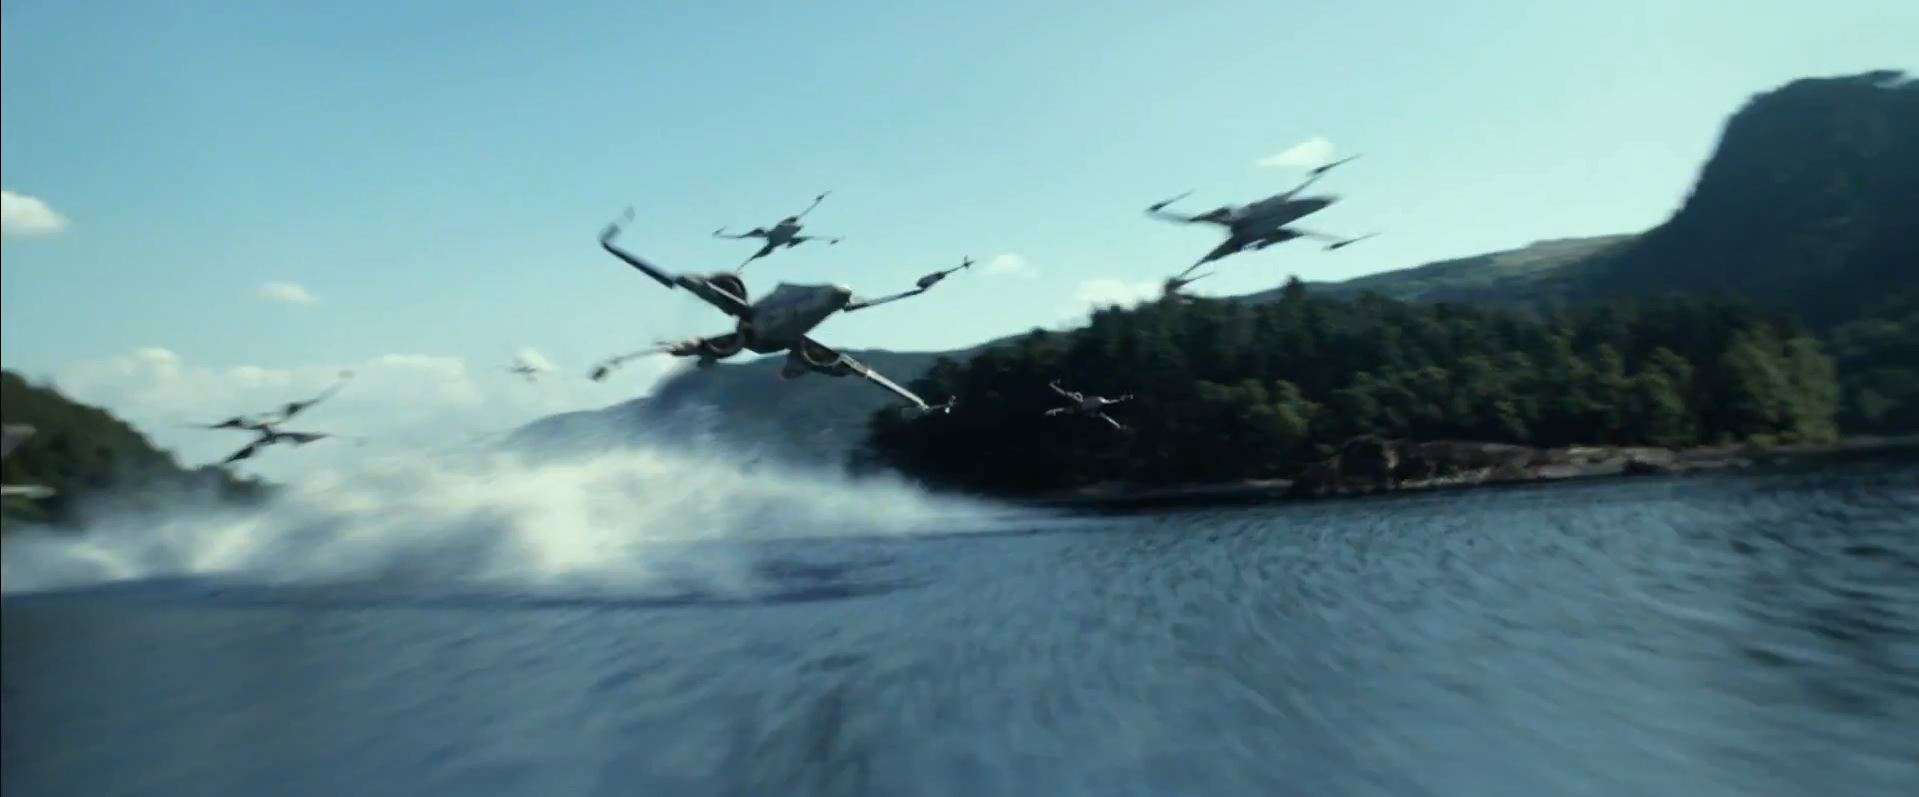 X-wings over water